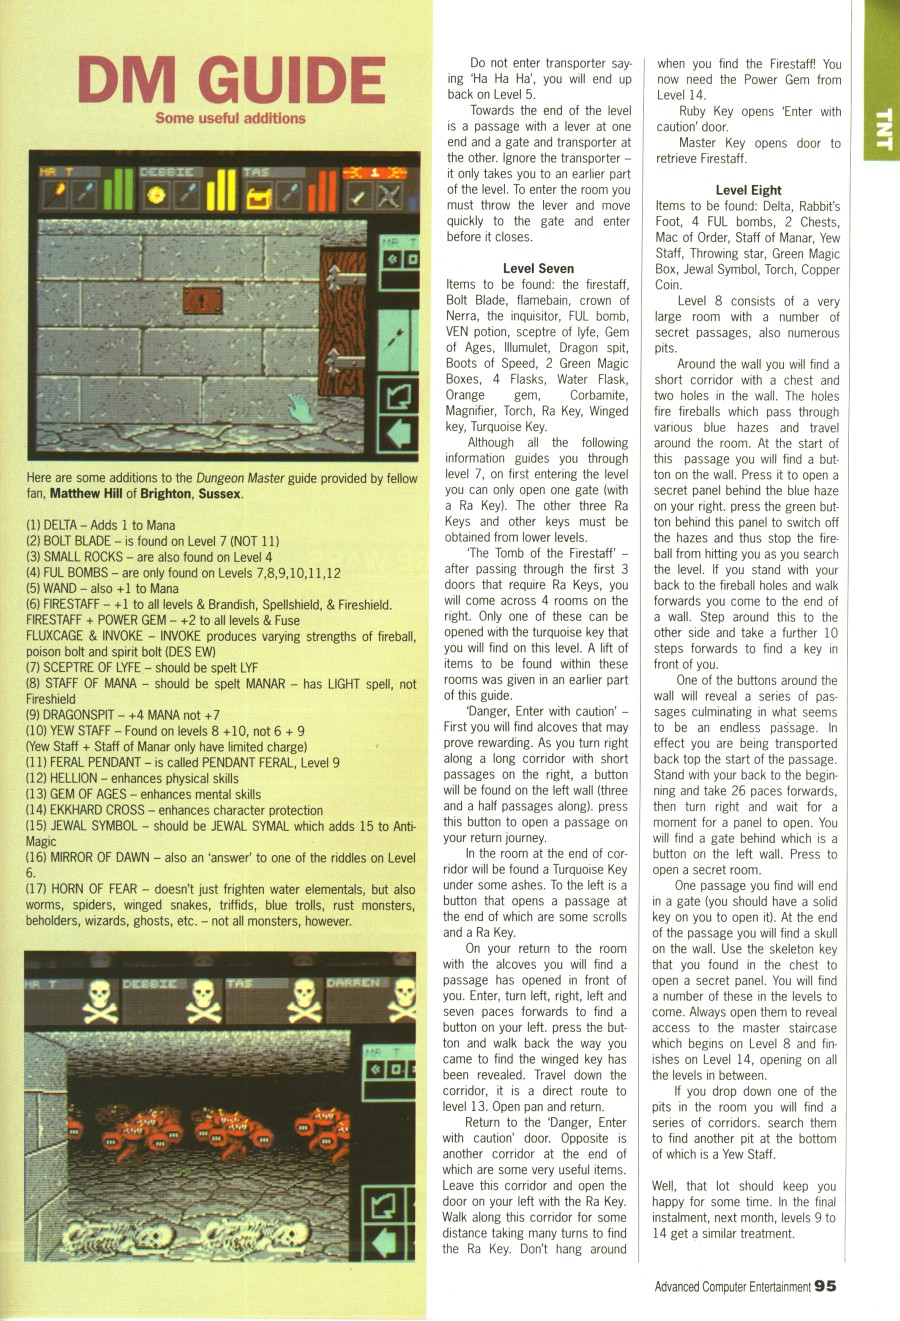 Dungeon Master Guide published in British magazine 'Advanced Computer Entertainment', Issue #31 April 1990, Page 95